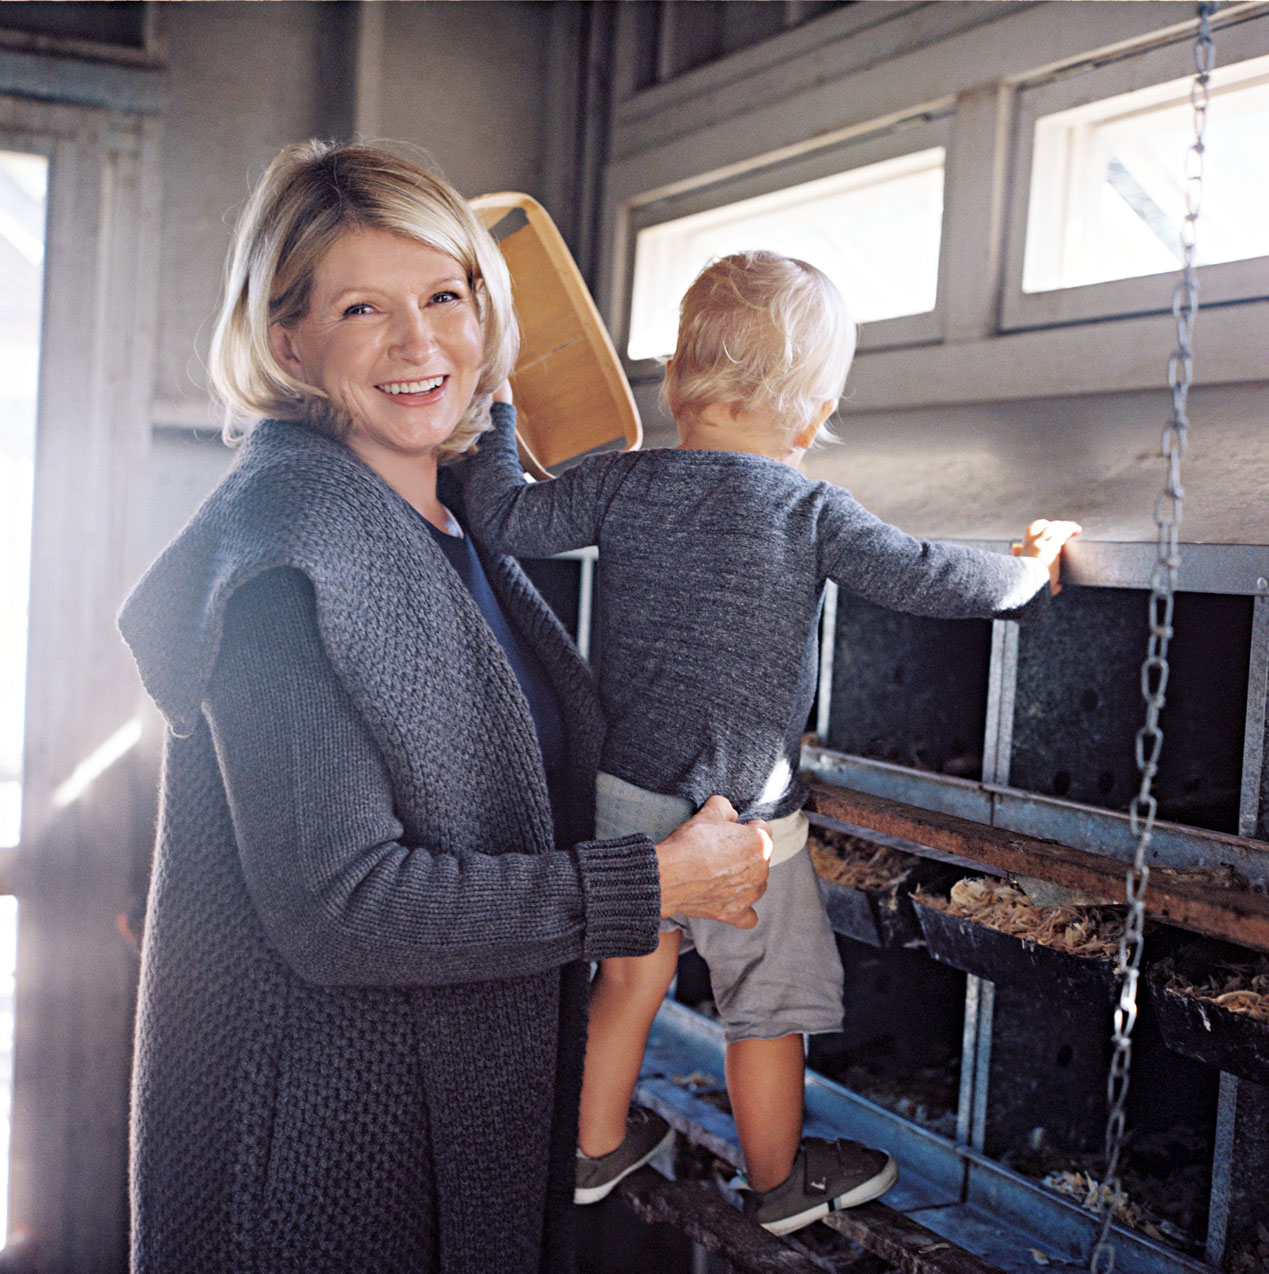 """When she's not busy organizing parties, decorating, or crafting gifts, Martha said she'll enjoy the brisk winter weather with her family, friends, and guests. """"During the way, we try to spend time outdoors, collecting eggs, hiking, and riding horses,"""" she wrote in her Living column in December 2016. """"I try to have a big open house to celebrate with my family, friends, and neighbors. This is not so different from what my parents did in our family home in Nutley, New Jersey, and what I hope my daughter will do as her two children grow and thrive."""""""